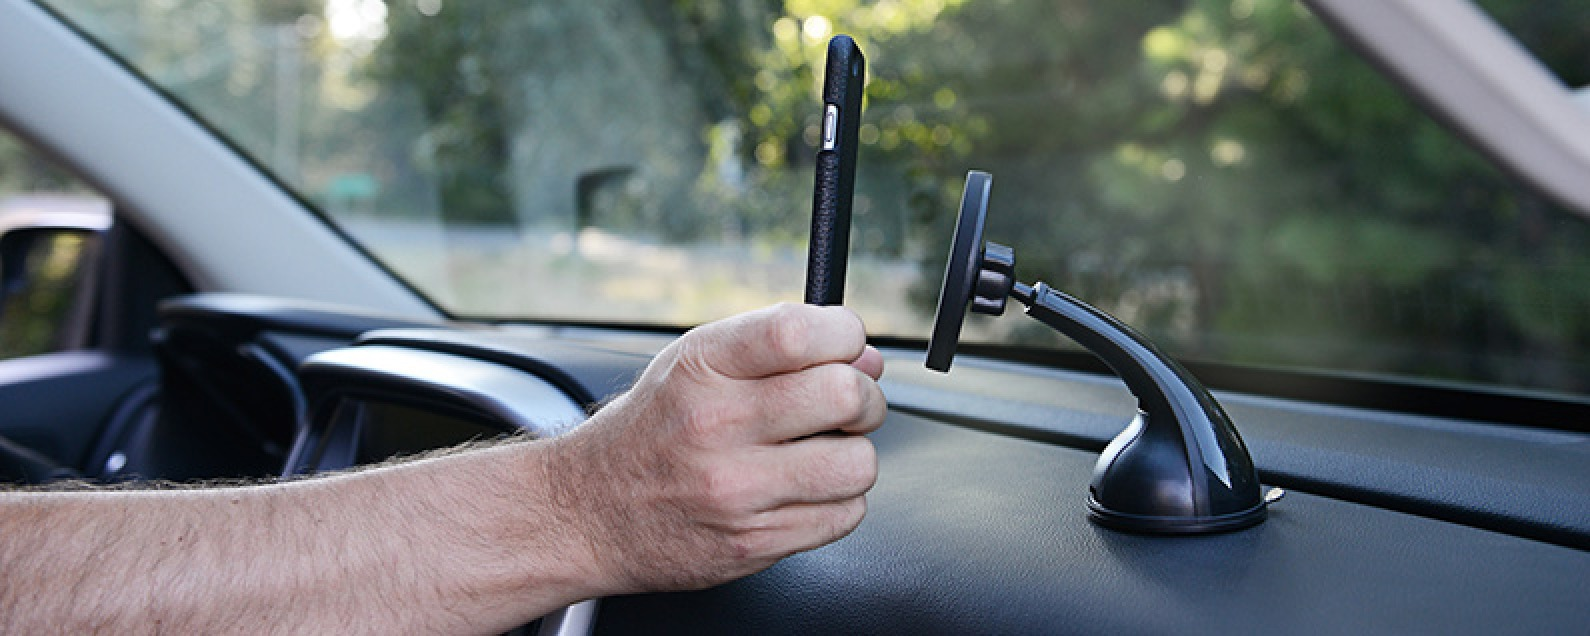 Review: MagMount iPhone Car Mount for iPhone 7 and More